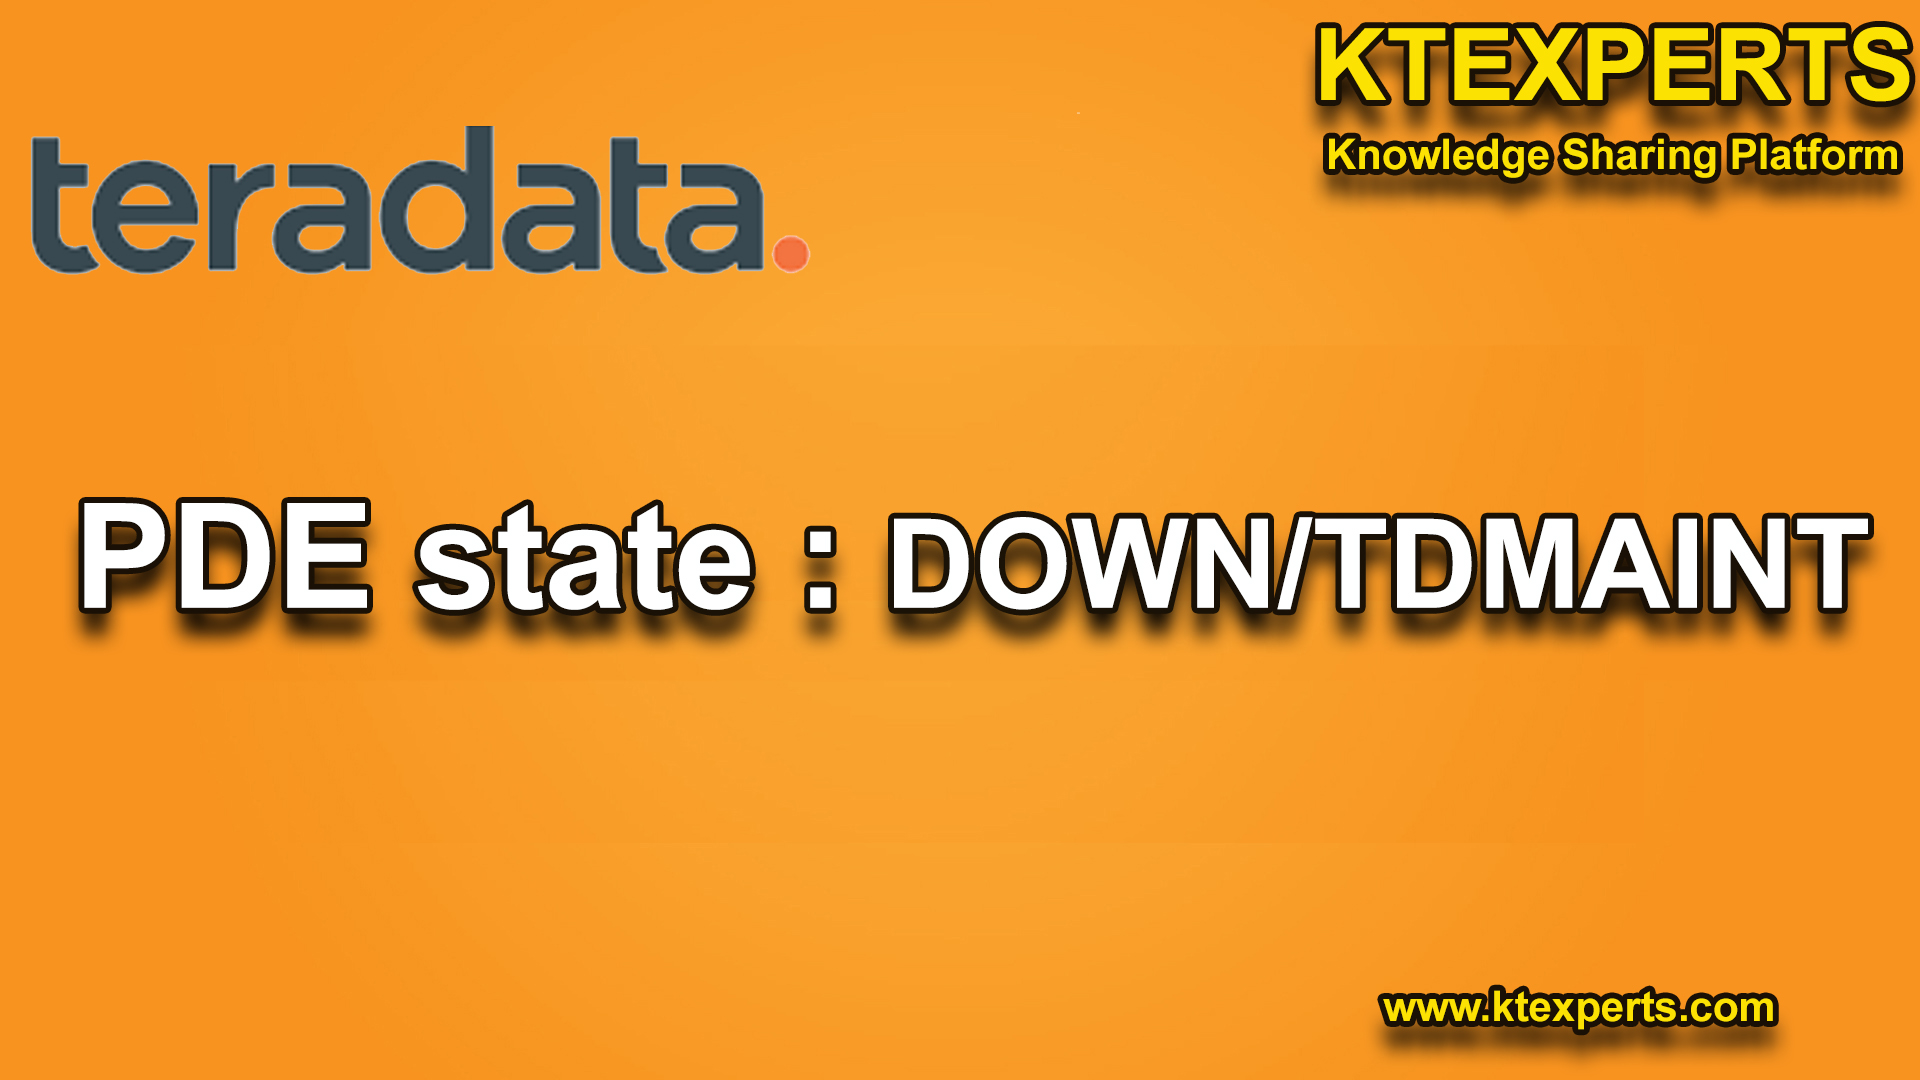 PDE STATE – DOWN/TDMAINT